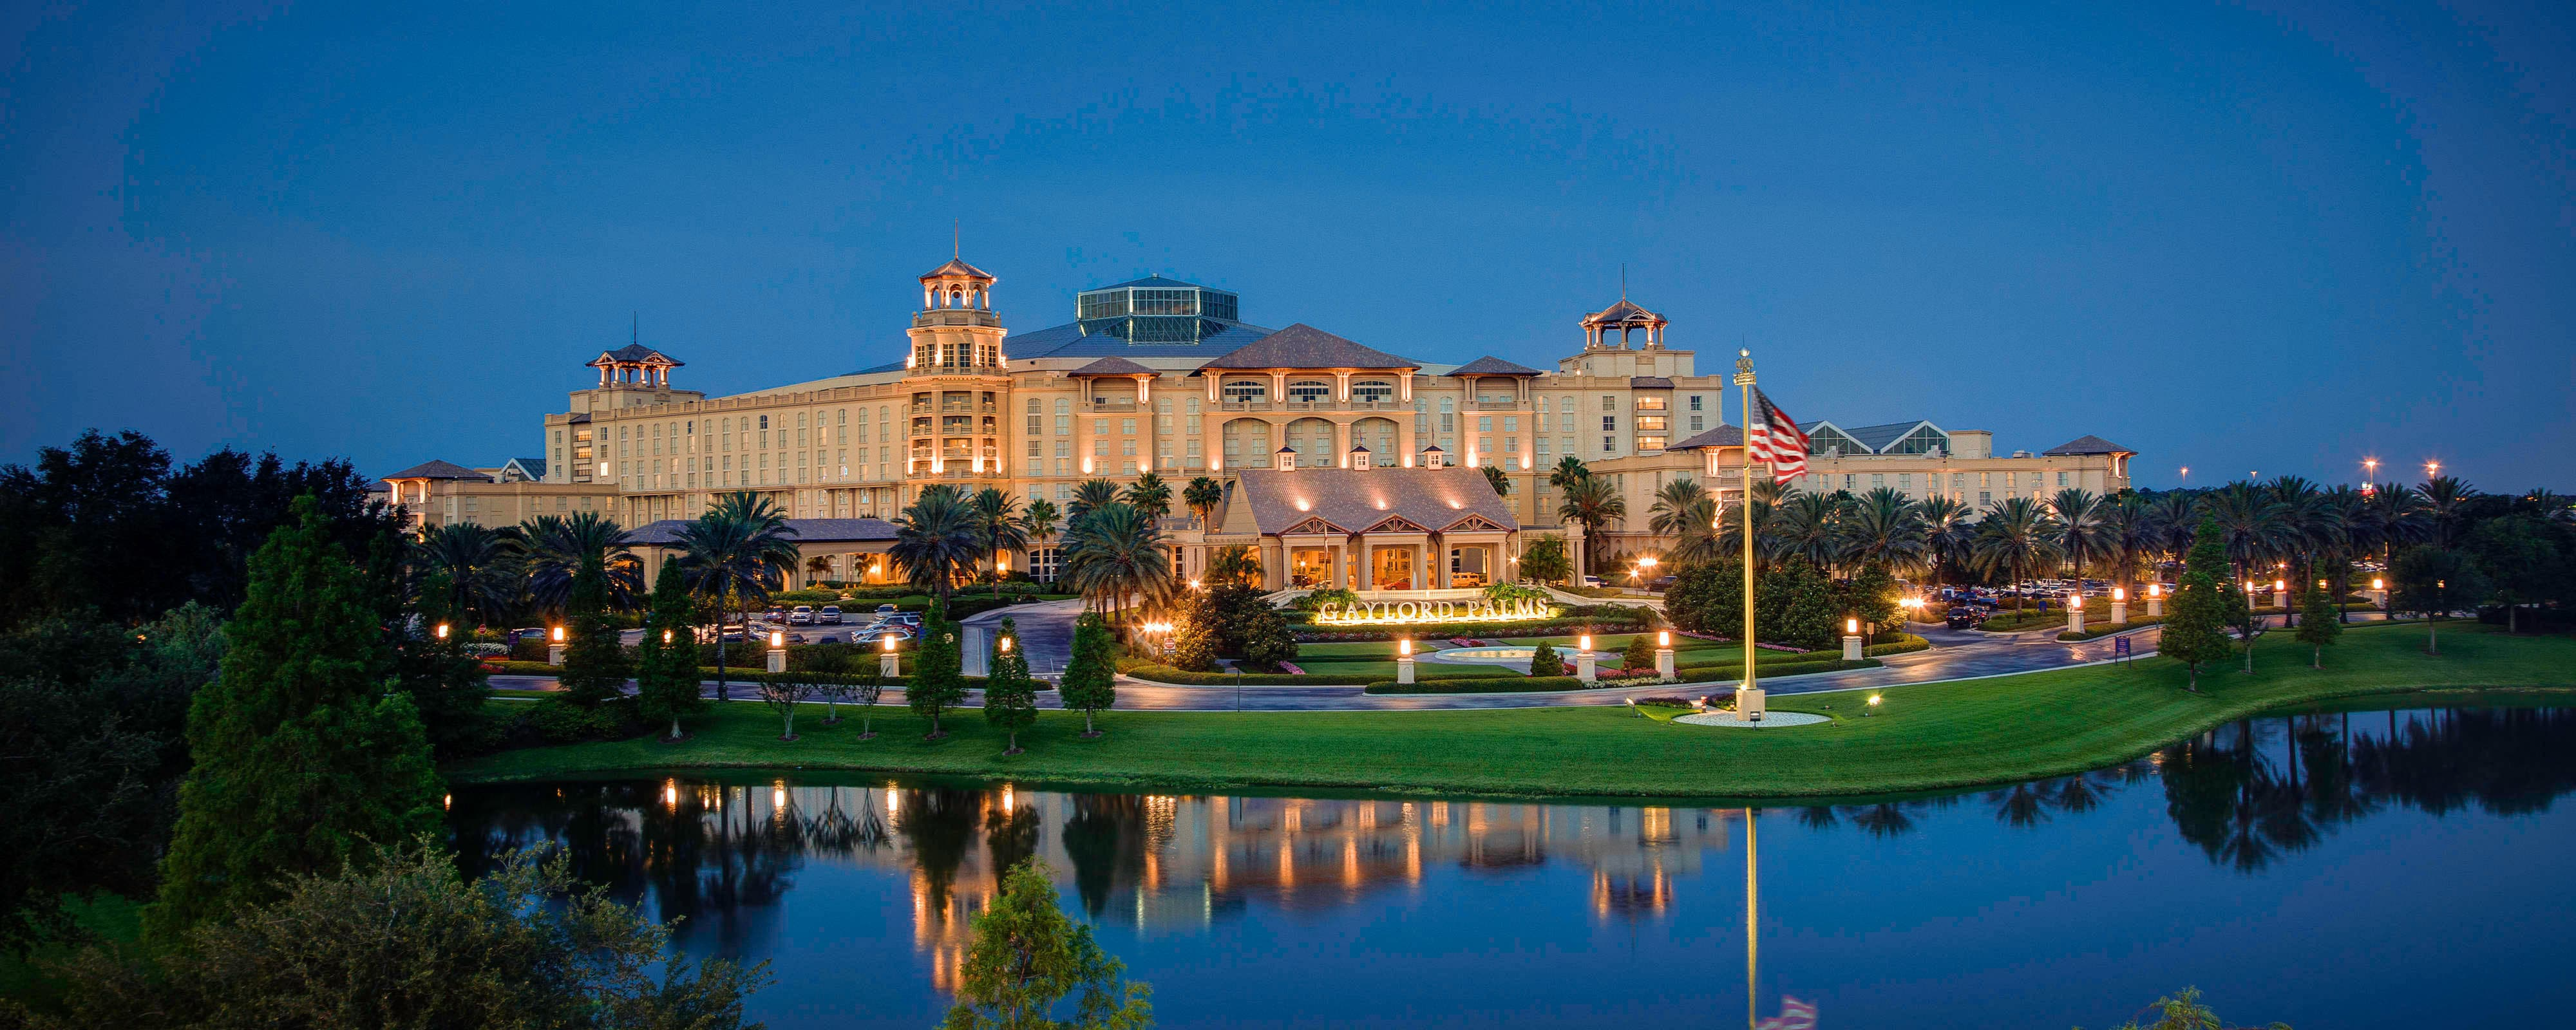 Gaylord Palms Resort Exterior